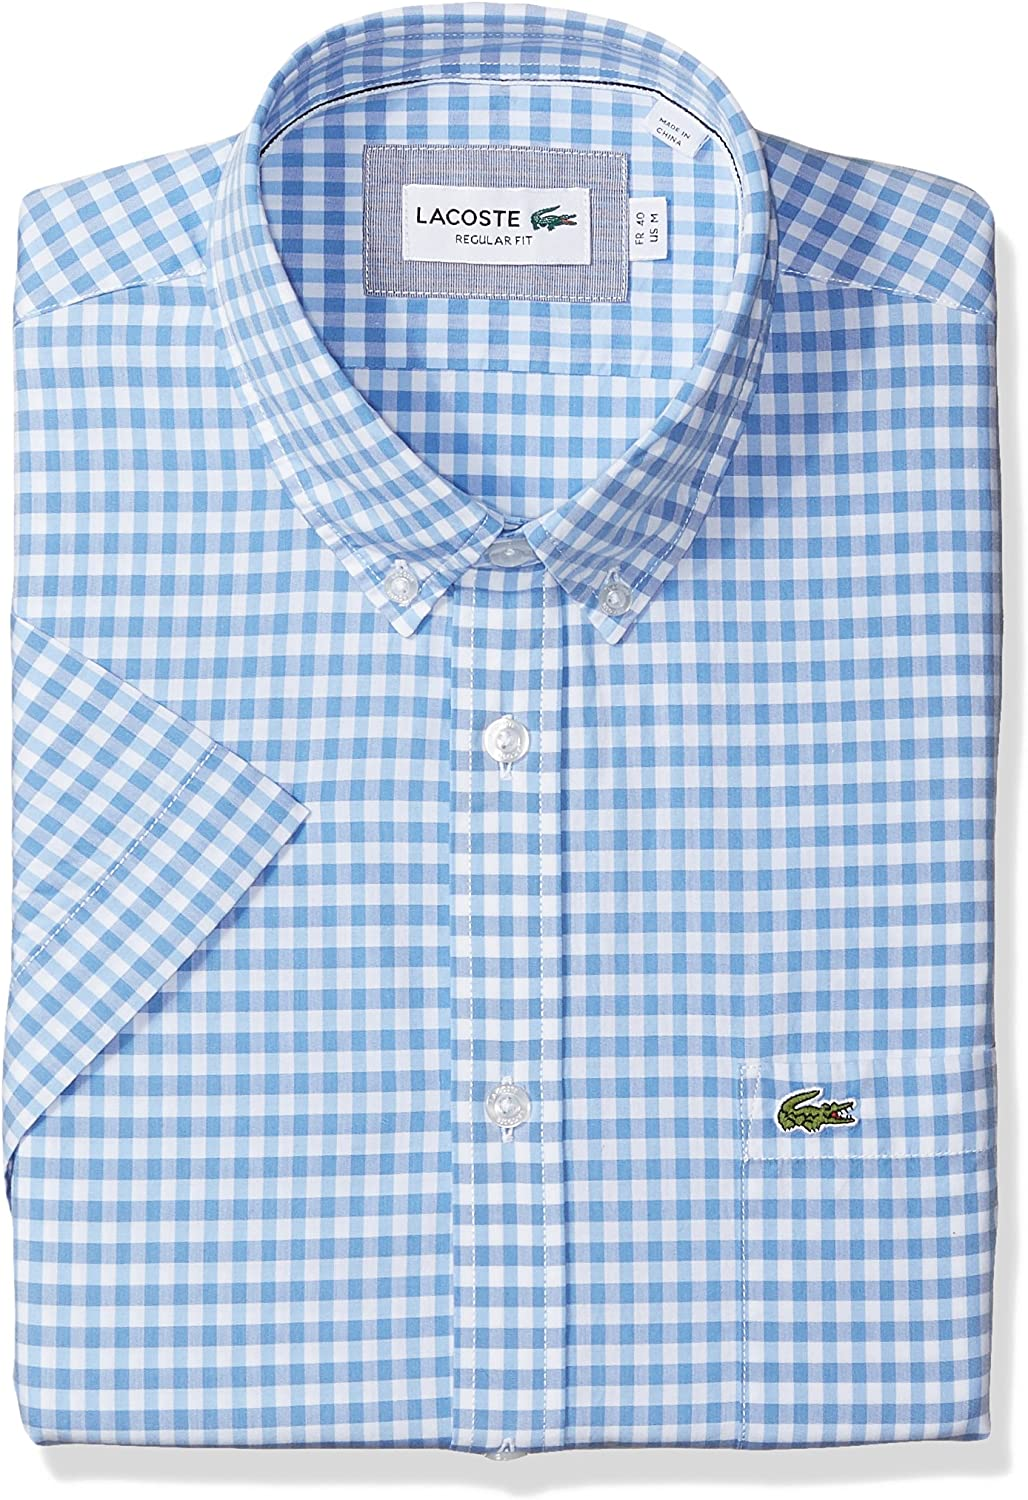 RDHOPE Mens Crew-Neck Long Sleeve Casual Solid with Pockets Woven Shirt